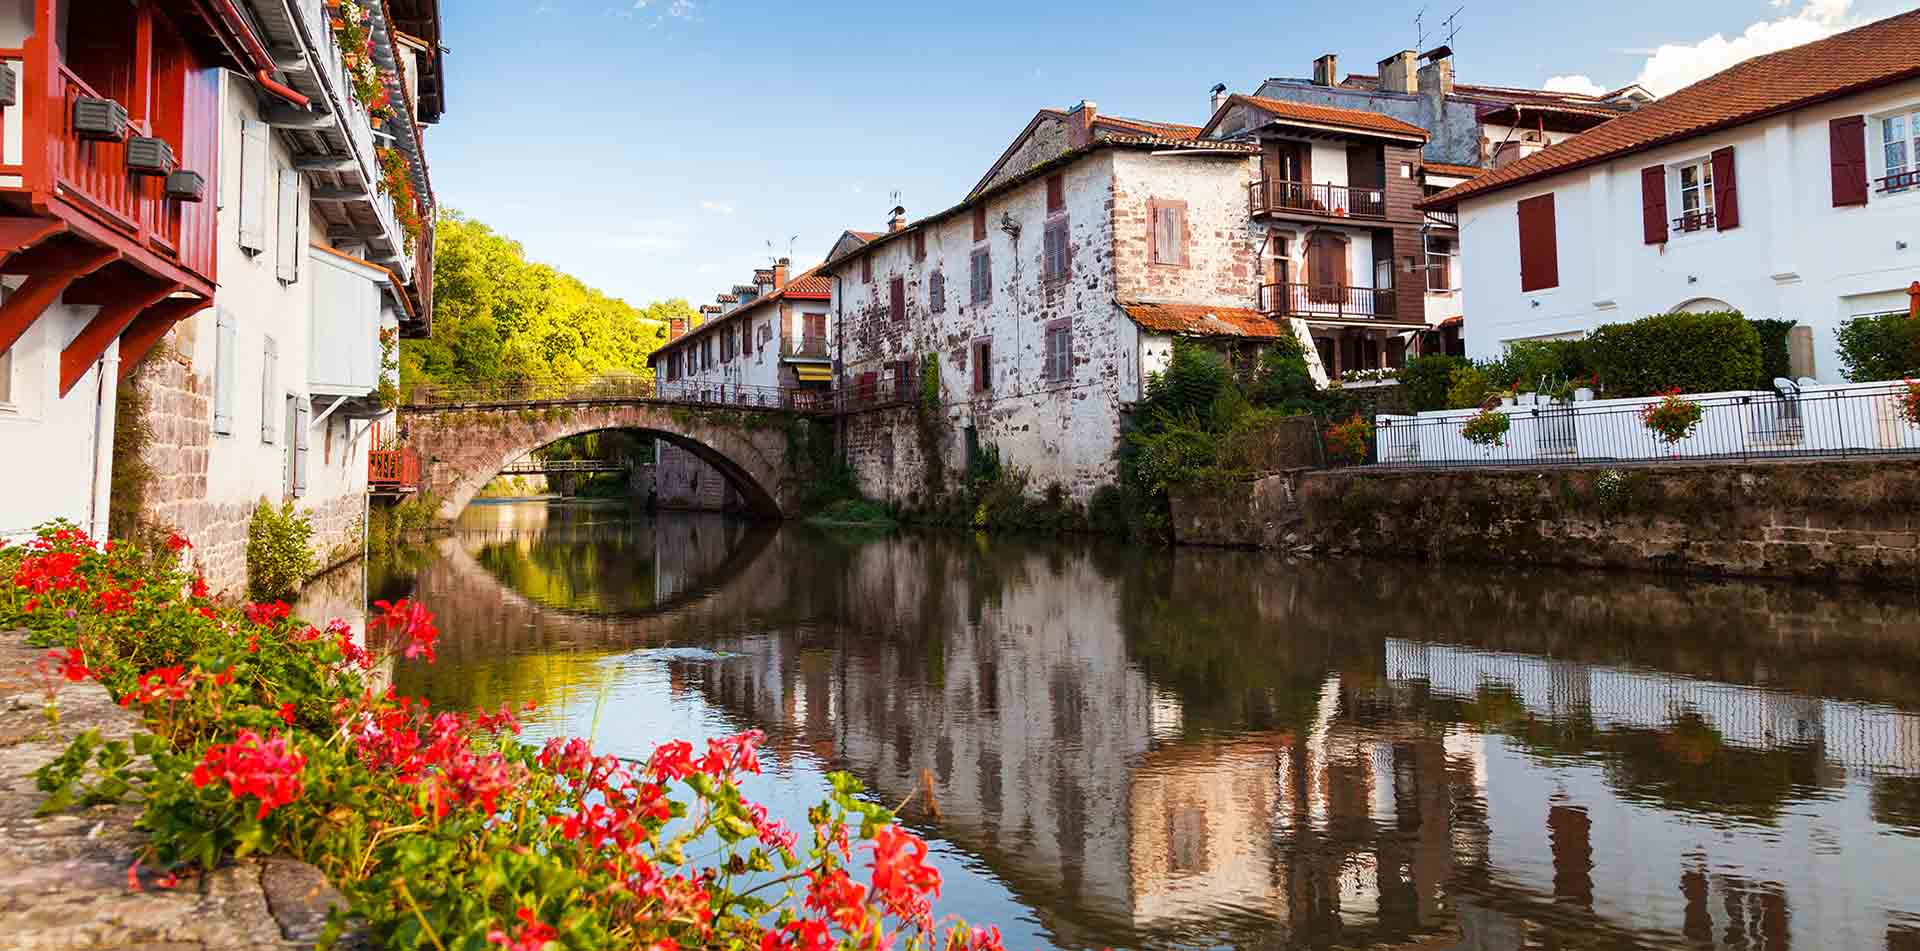 River in a Small Town in Basque, France